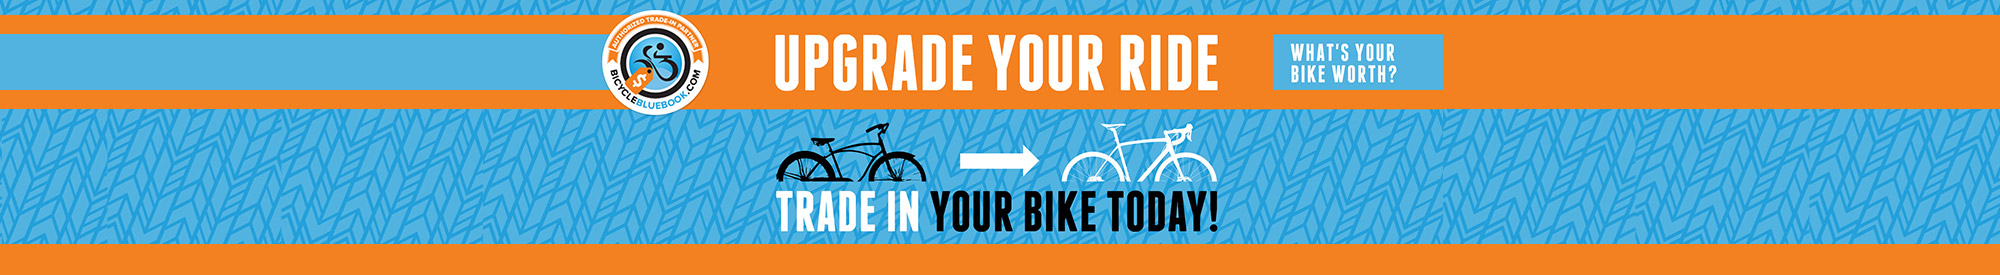 What's your bike worth? Upgrade your ride Trade in your bike today!